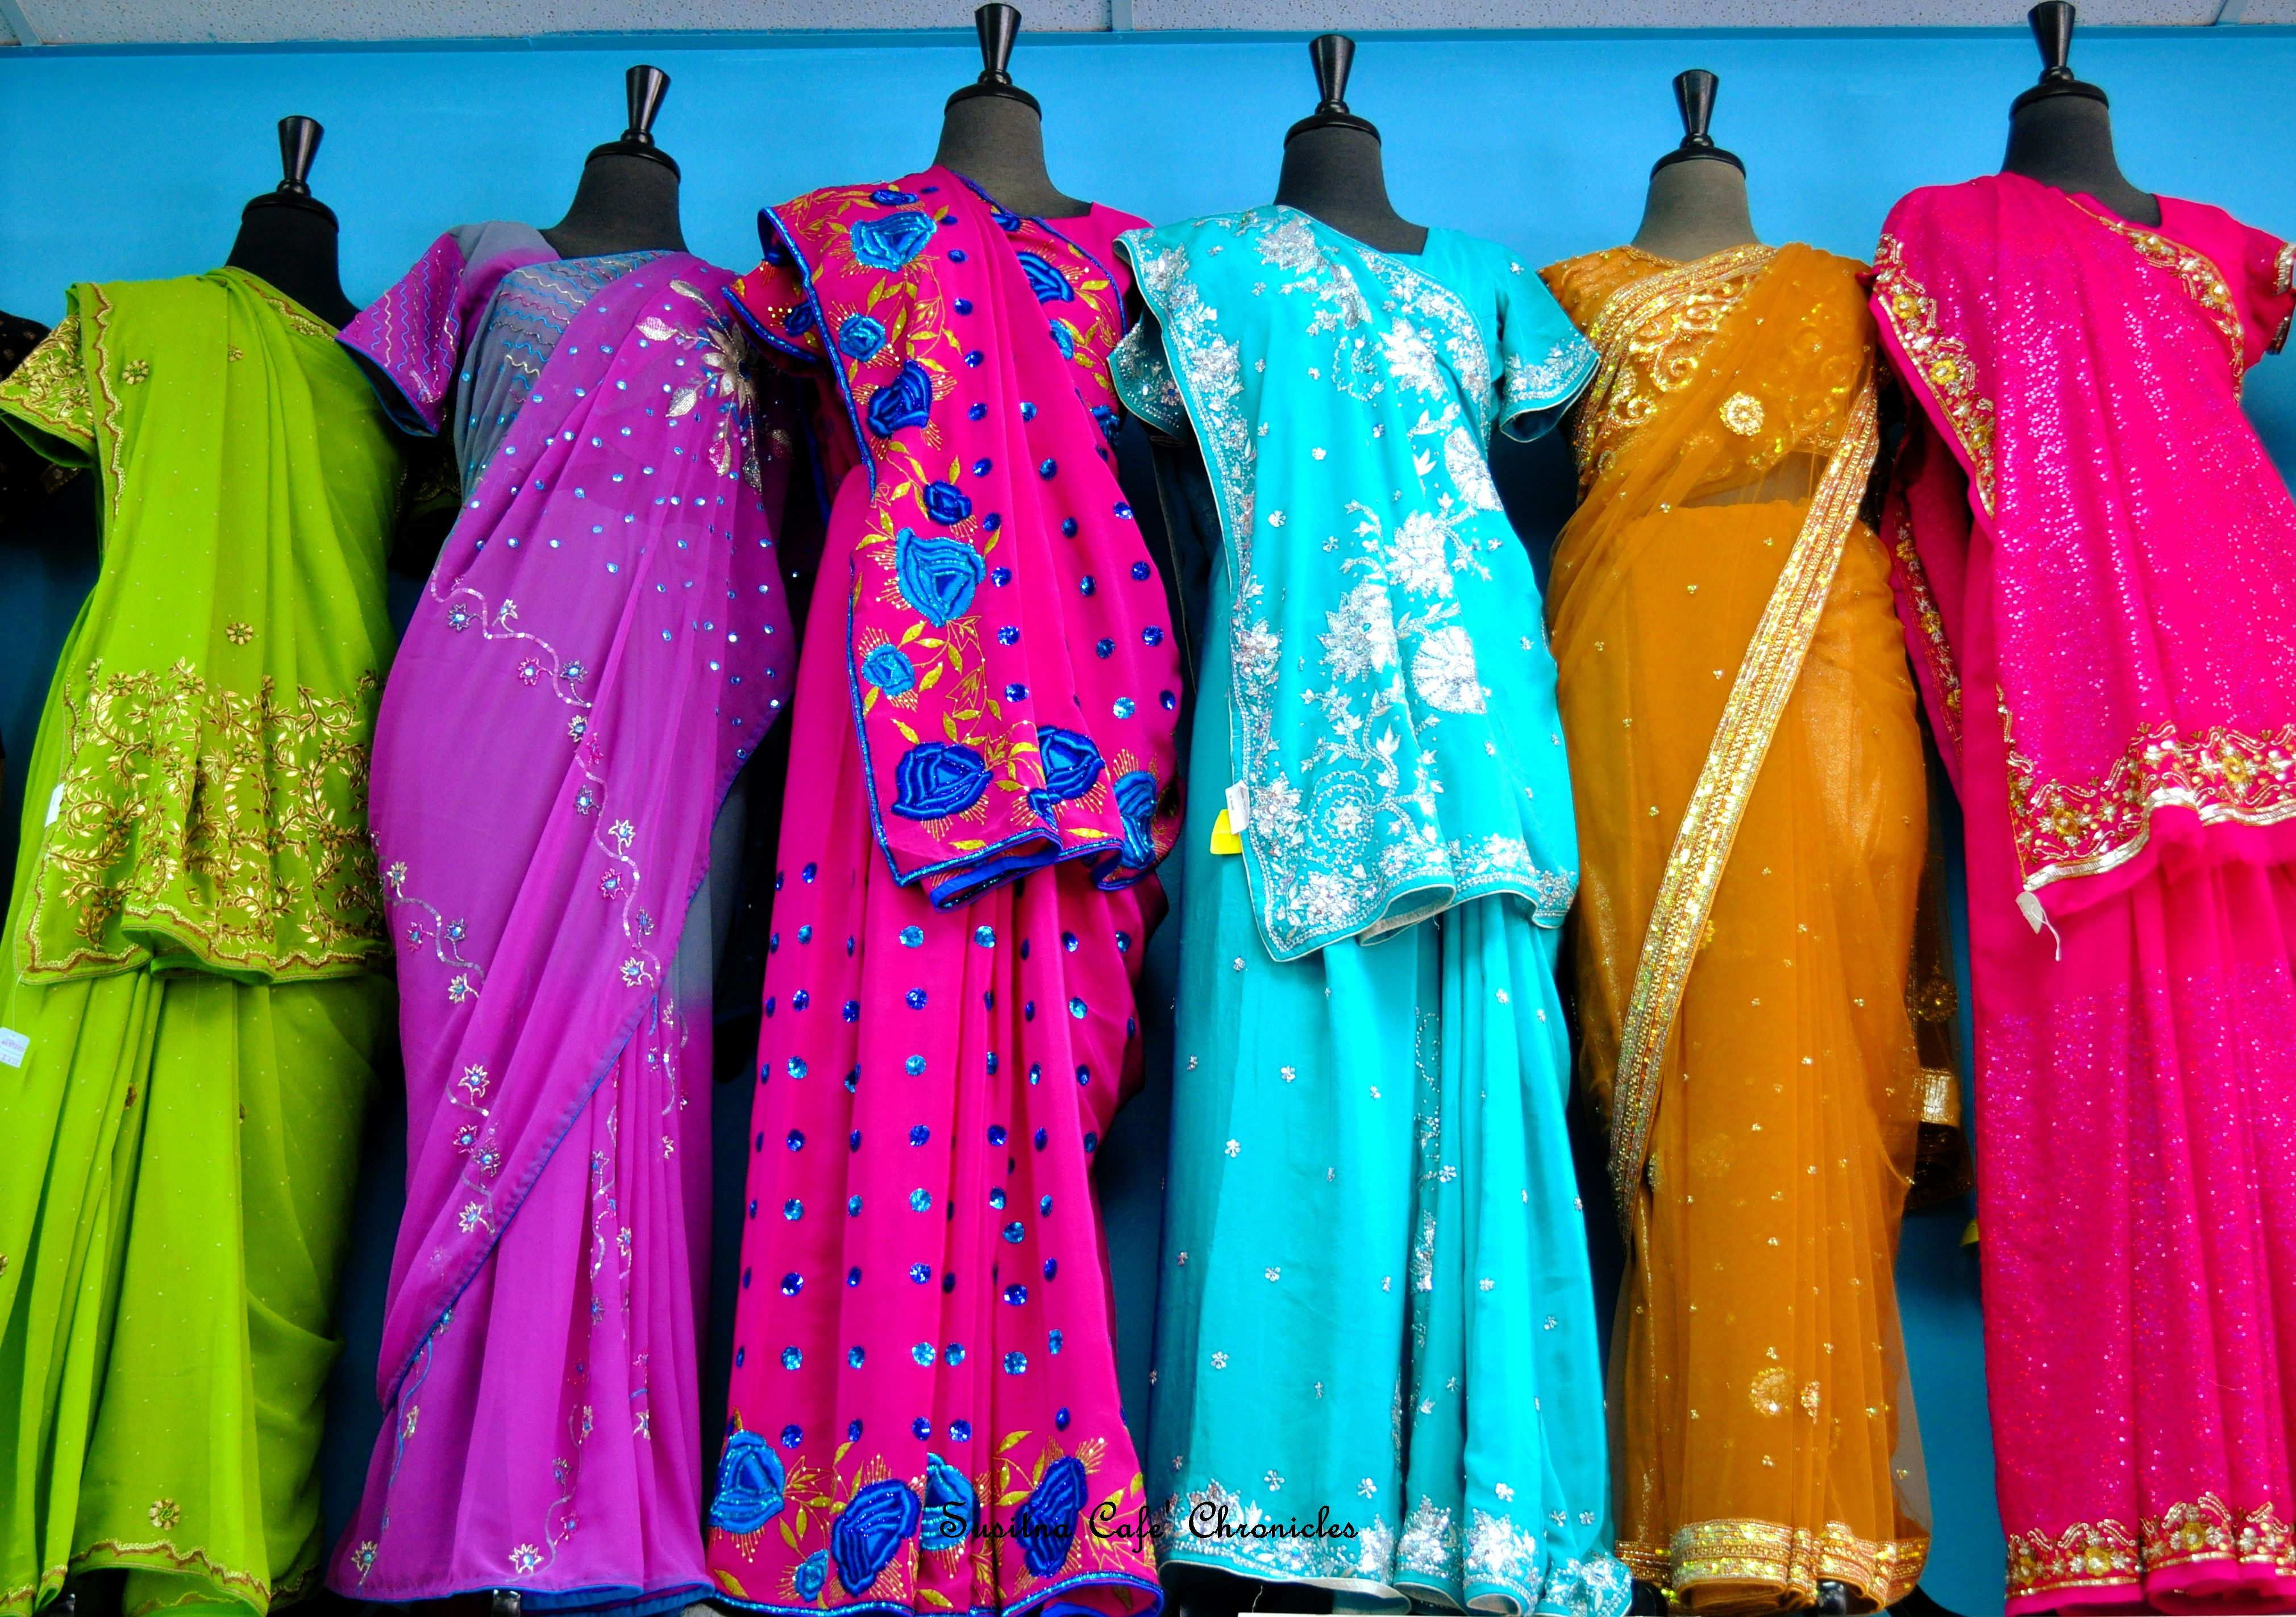 Online shop for wedding bridal sarees, designer sarees, embroidered sarees salwar kameez, bridal wedding lehengas, traditional sarees lehengas, embroidered salwar kameez, traditional salwar kameez, designer lehengas for express delivery to USa, UK, India, australia and Worldwide.